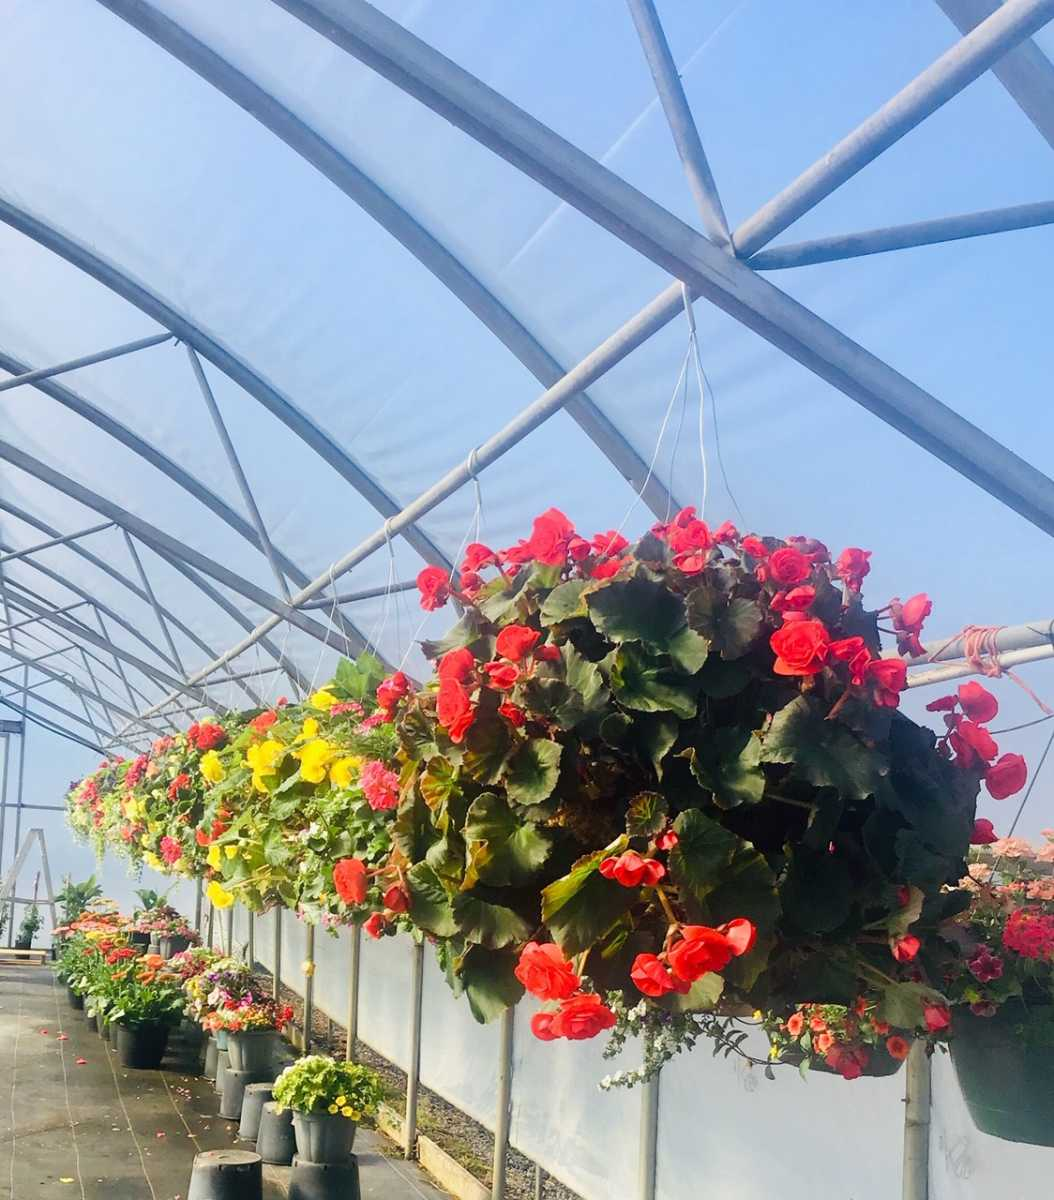 row of hanging baskets